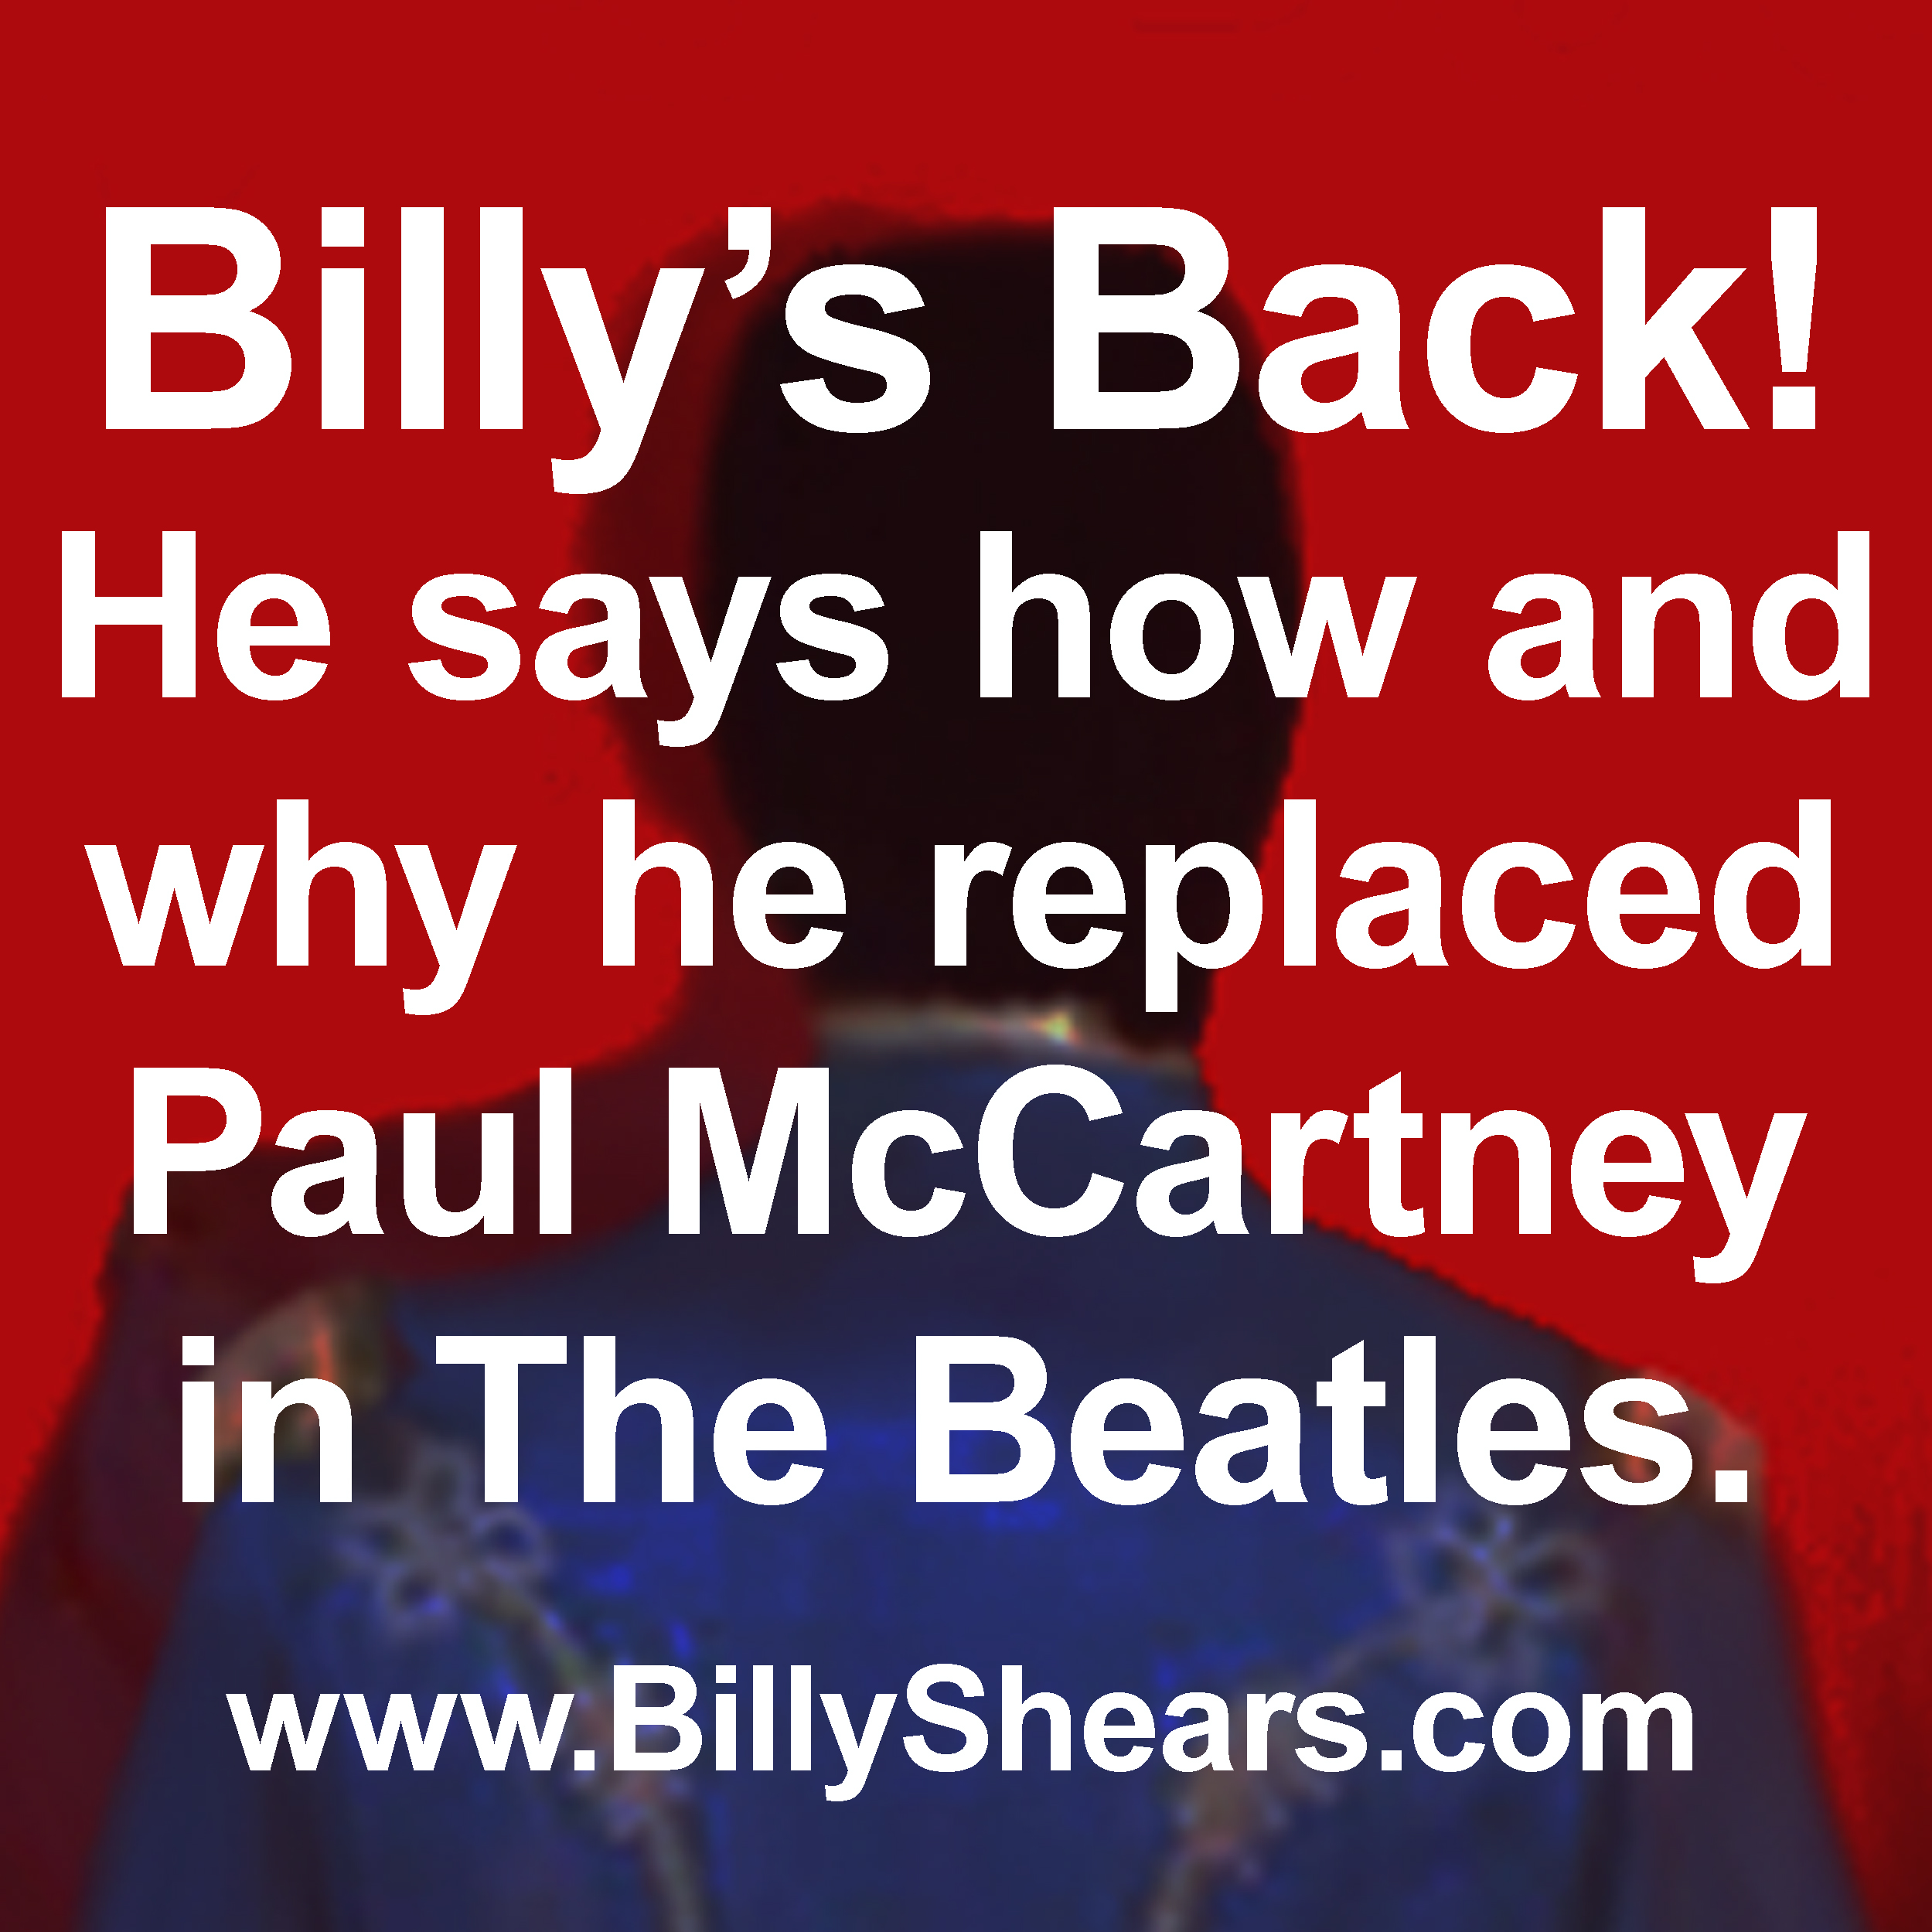 Paul is Dead.  Paul McCartney was replaced by William Shepherd.